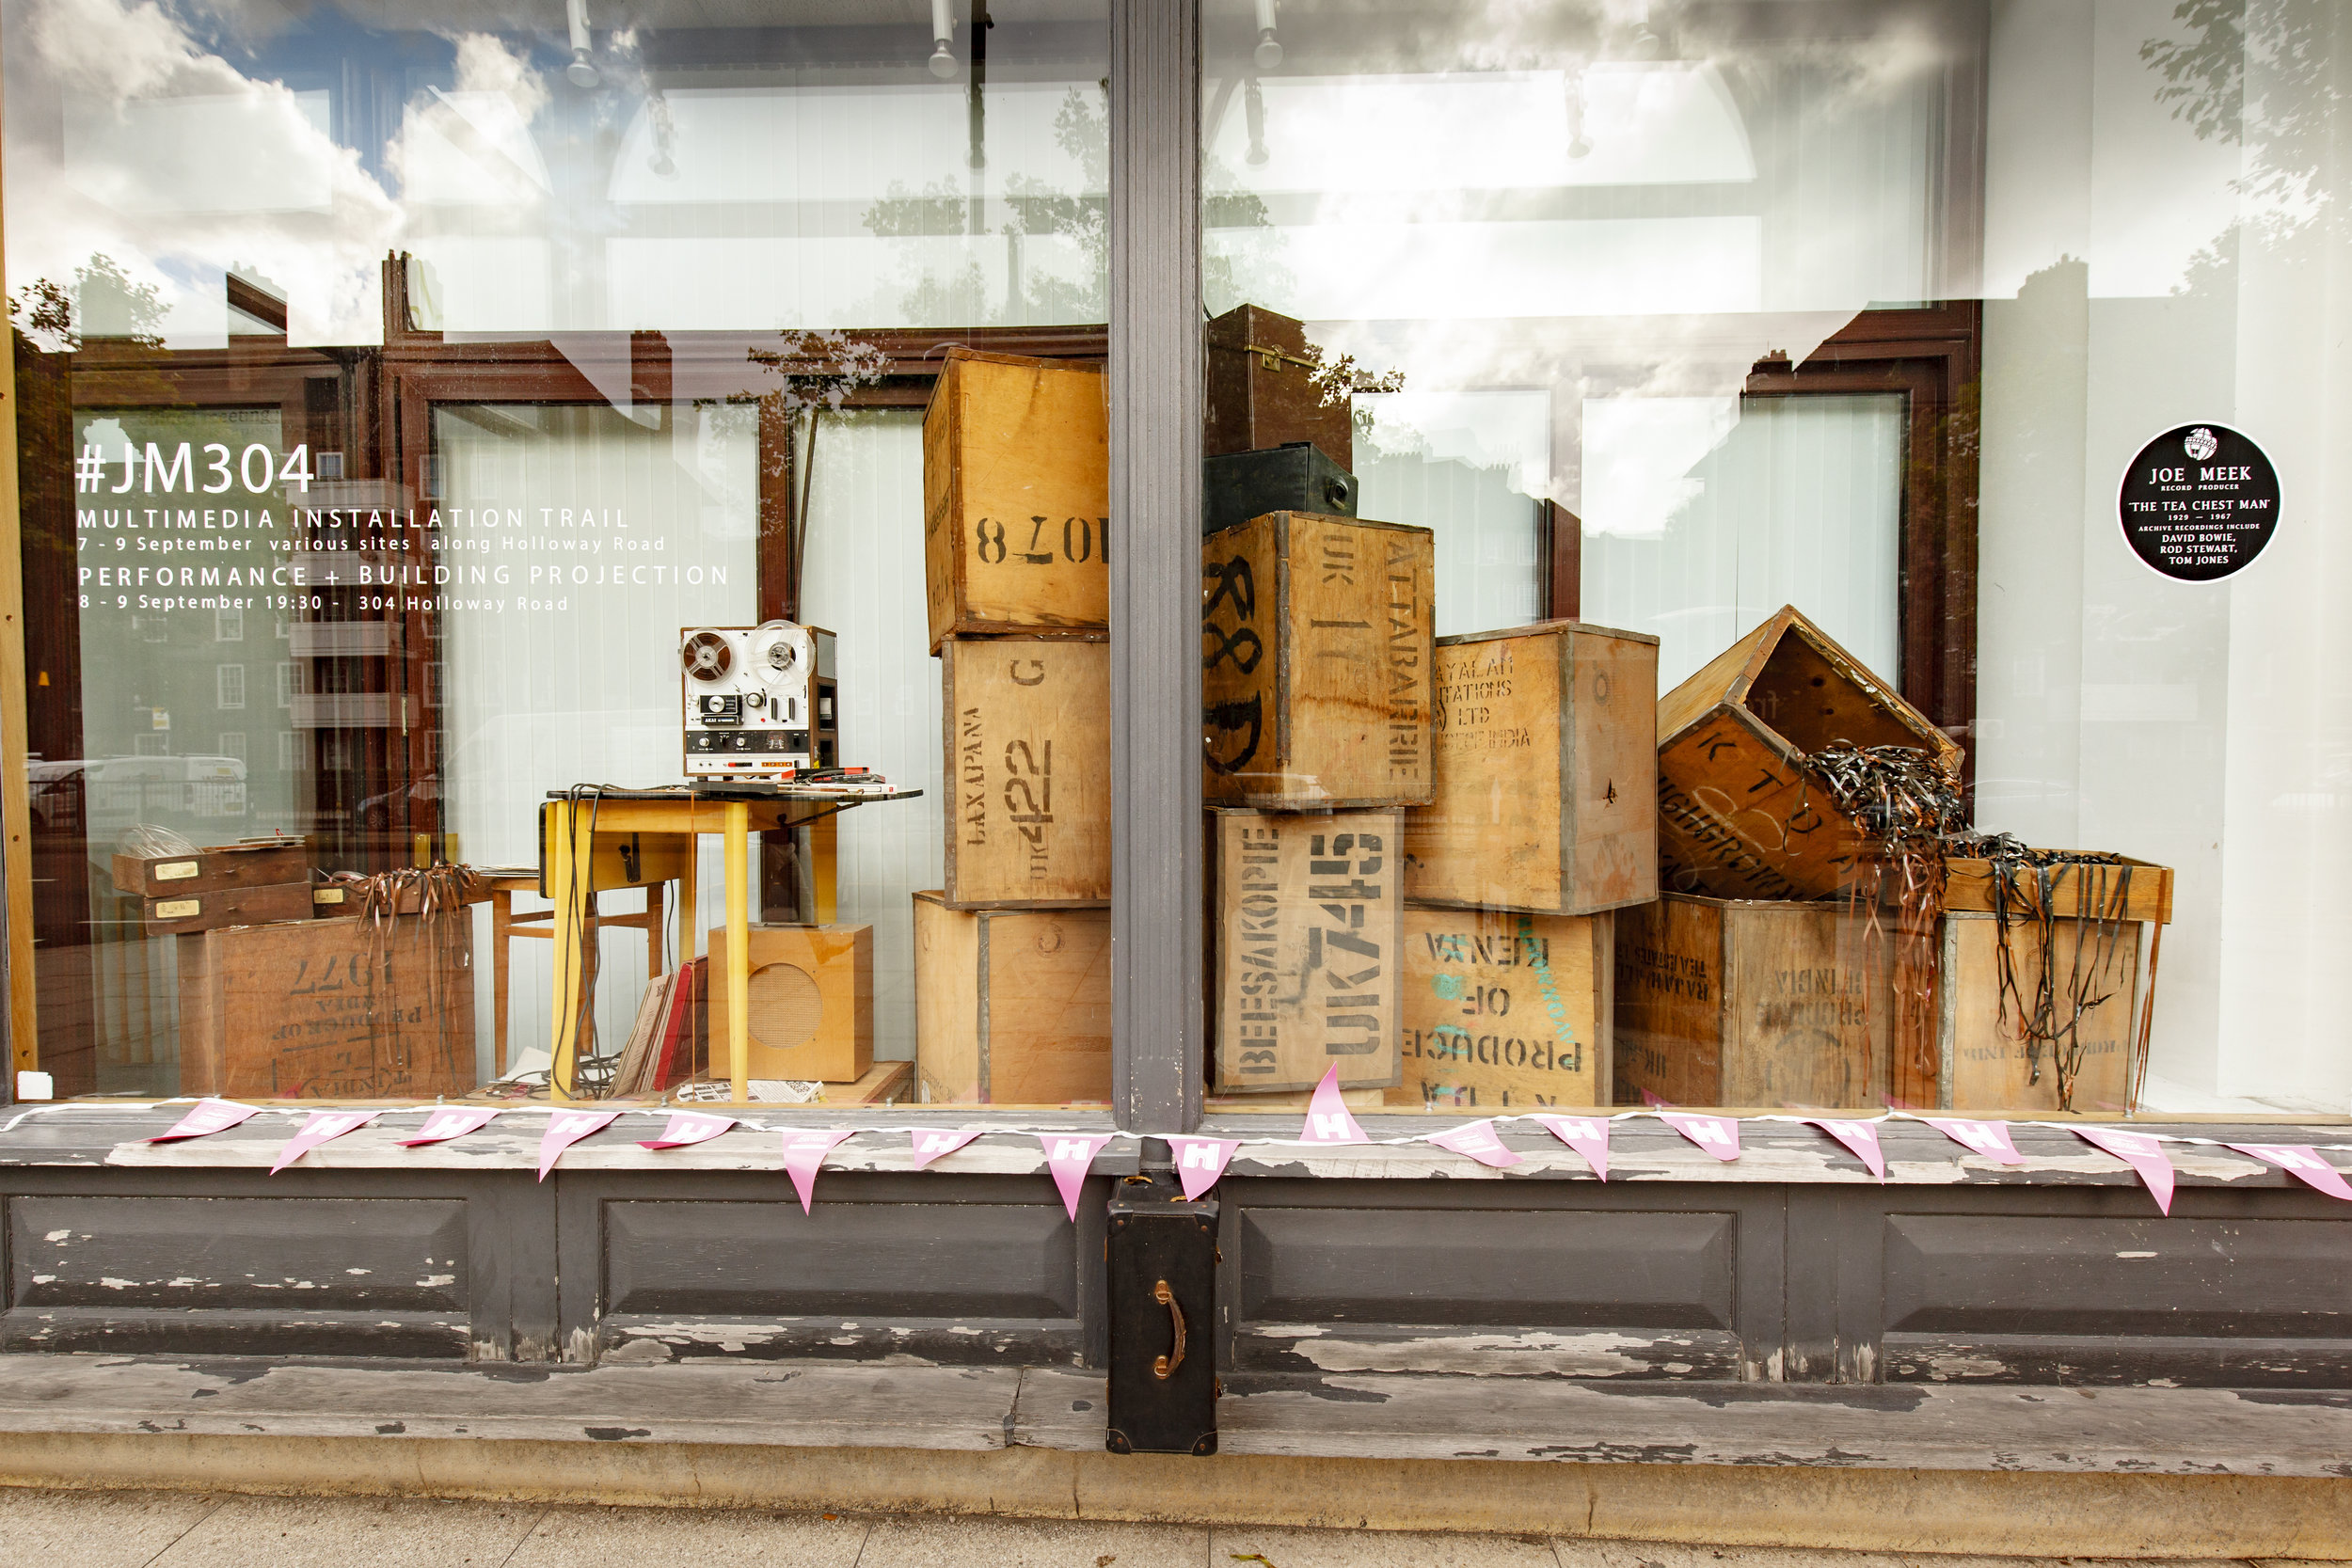 When Joe Meek's possessions were removed from 304 Holloway Road after his death, 67 tea chests full of archive recordings were removed from the property. Installation of reel to reel player, tea chests and quarter inch magnetic tape in former department store window at Resource For London.